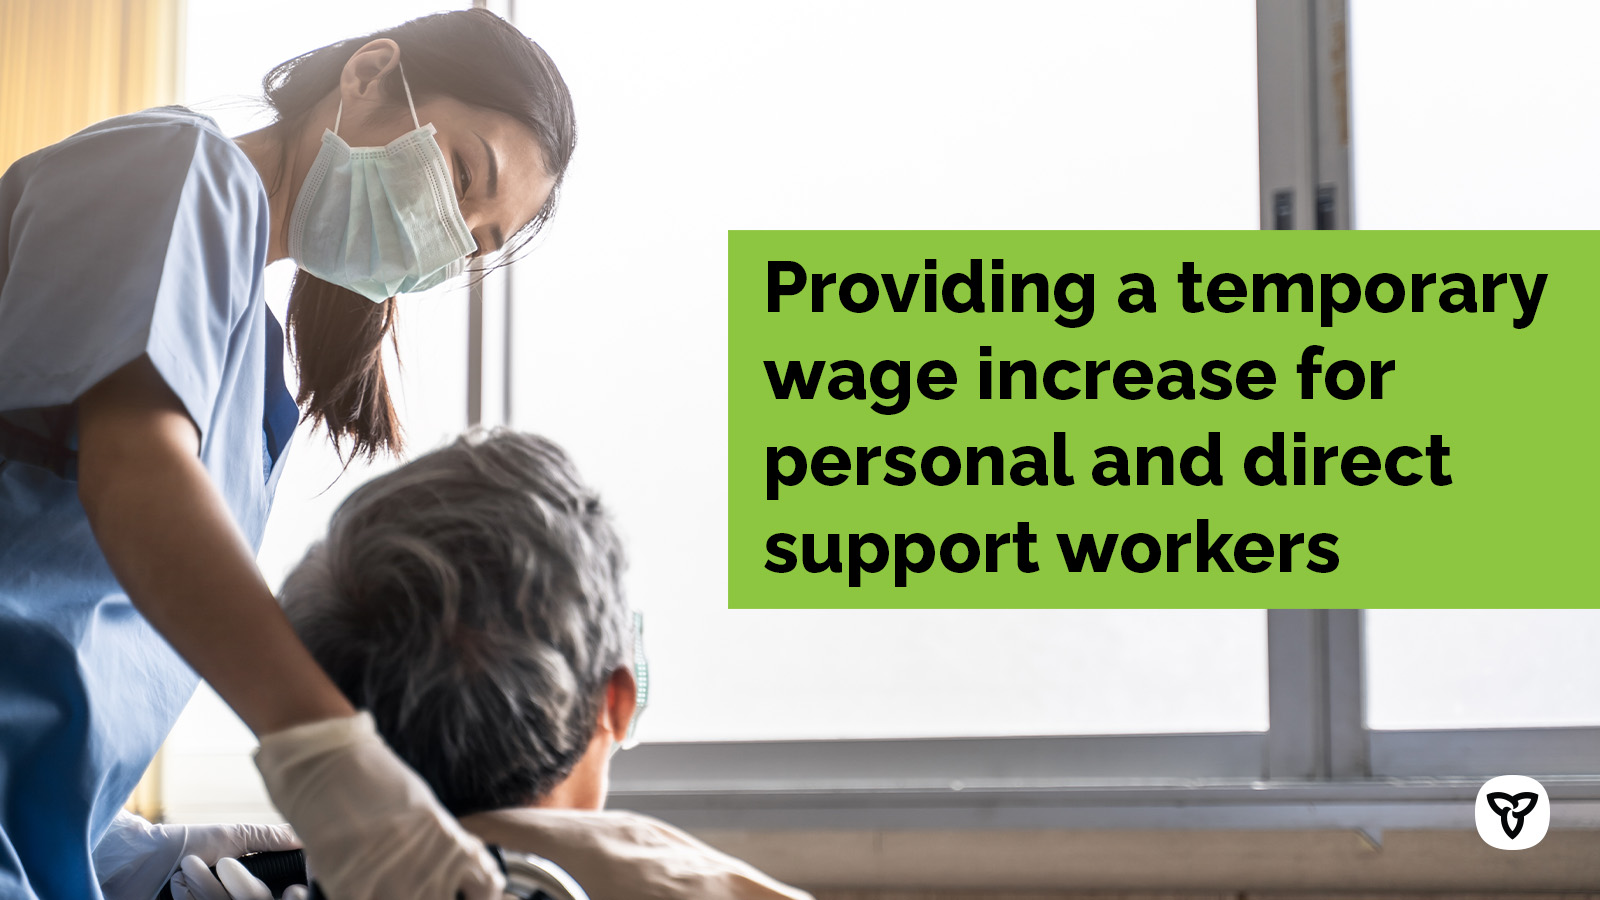 Ontario Provides $461 Million to Temporarily Enhance Wages For Personal Support Workers